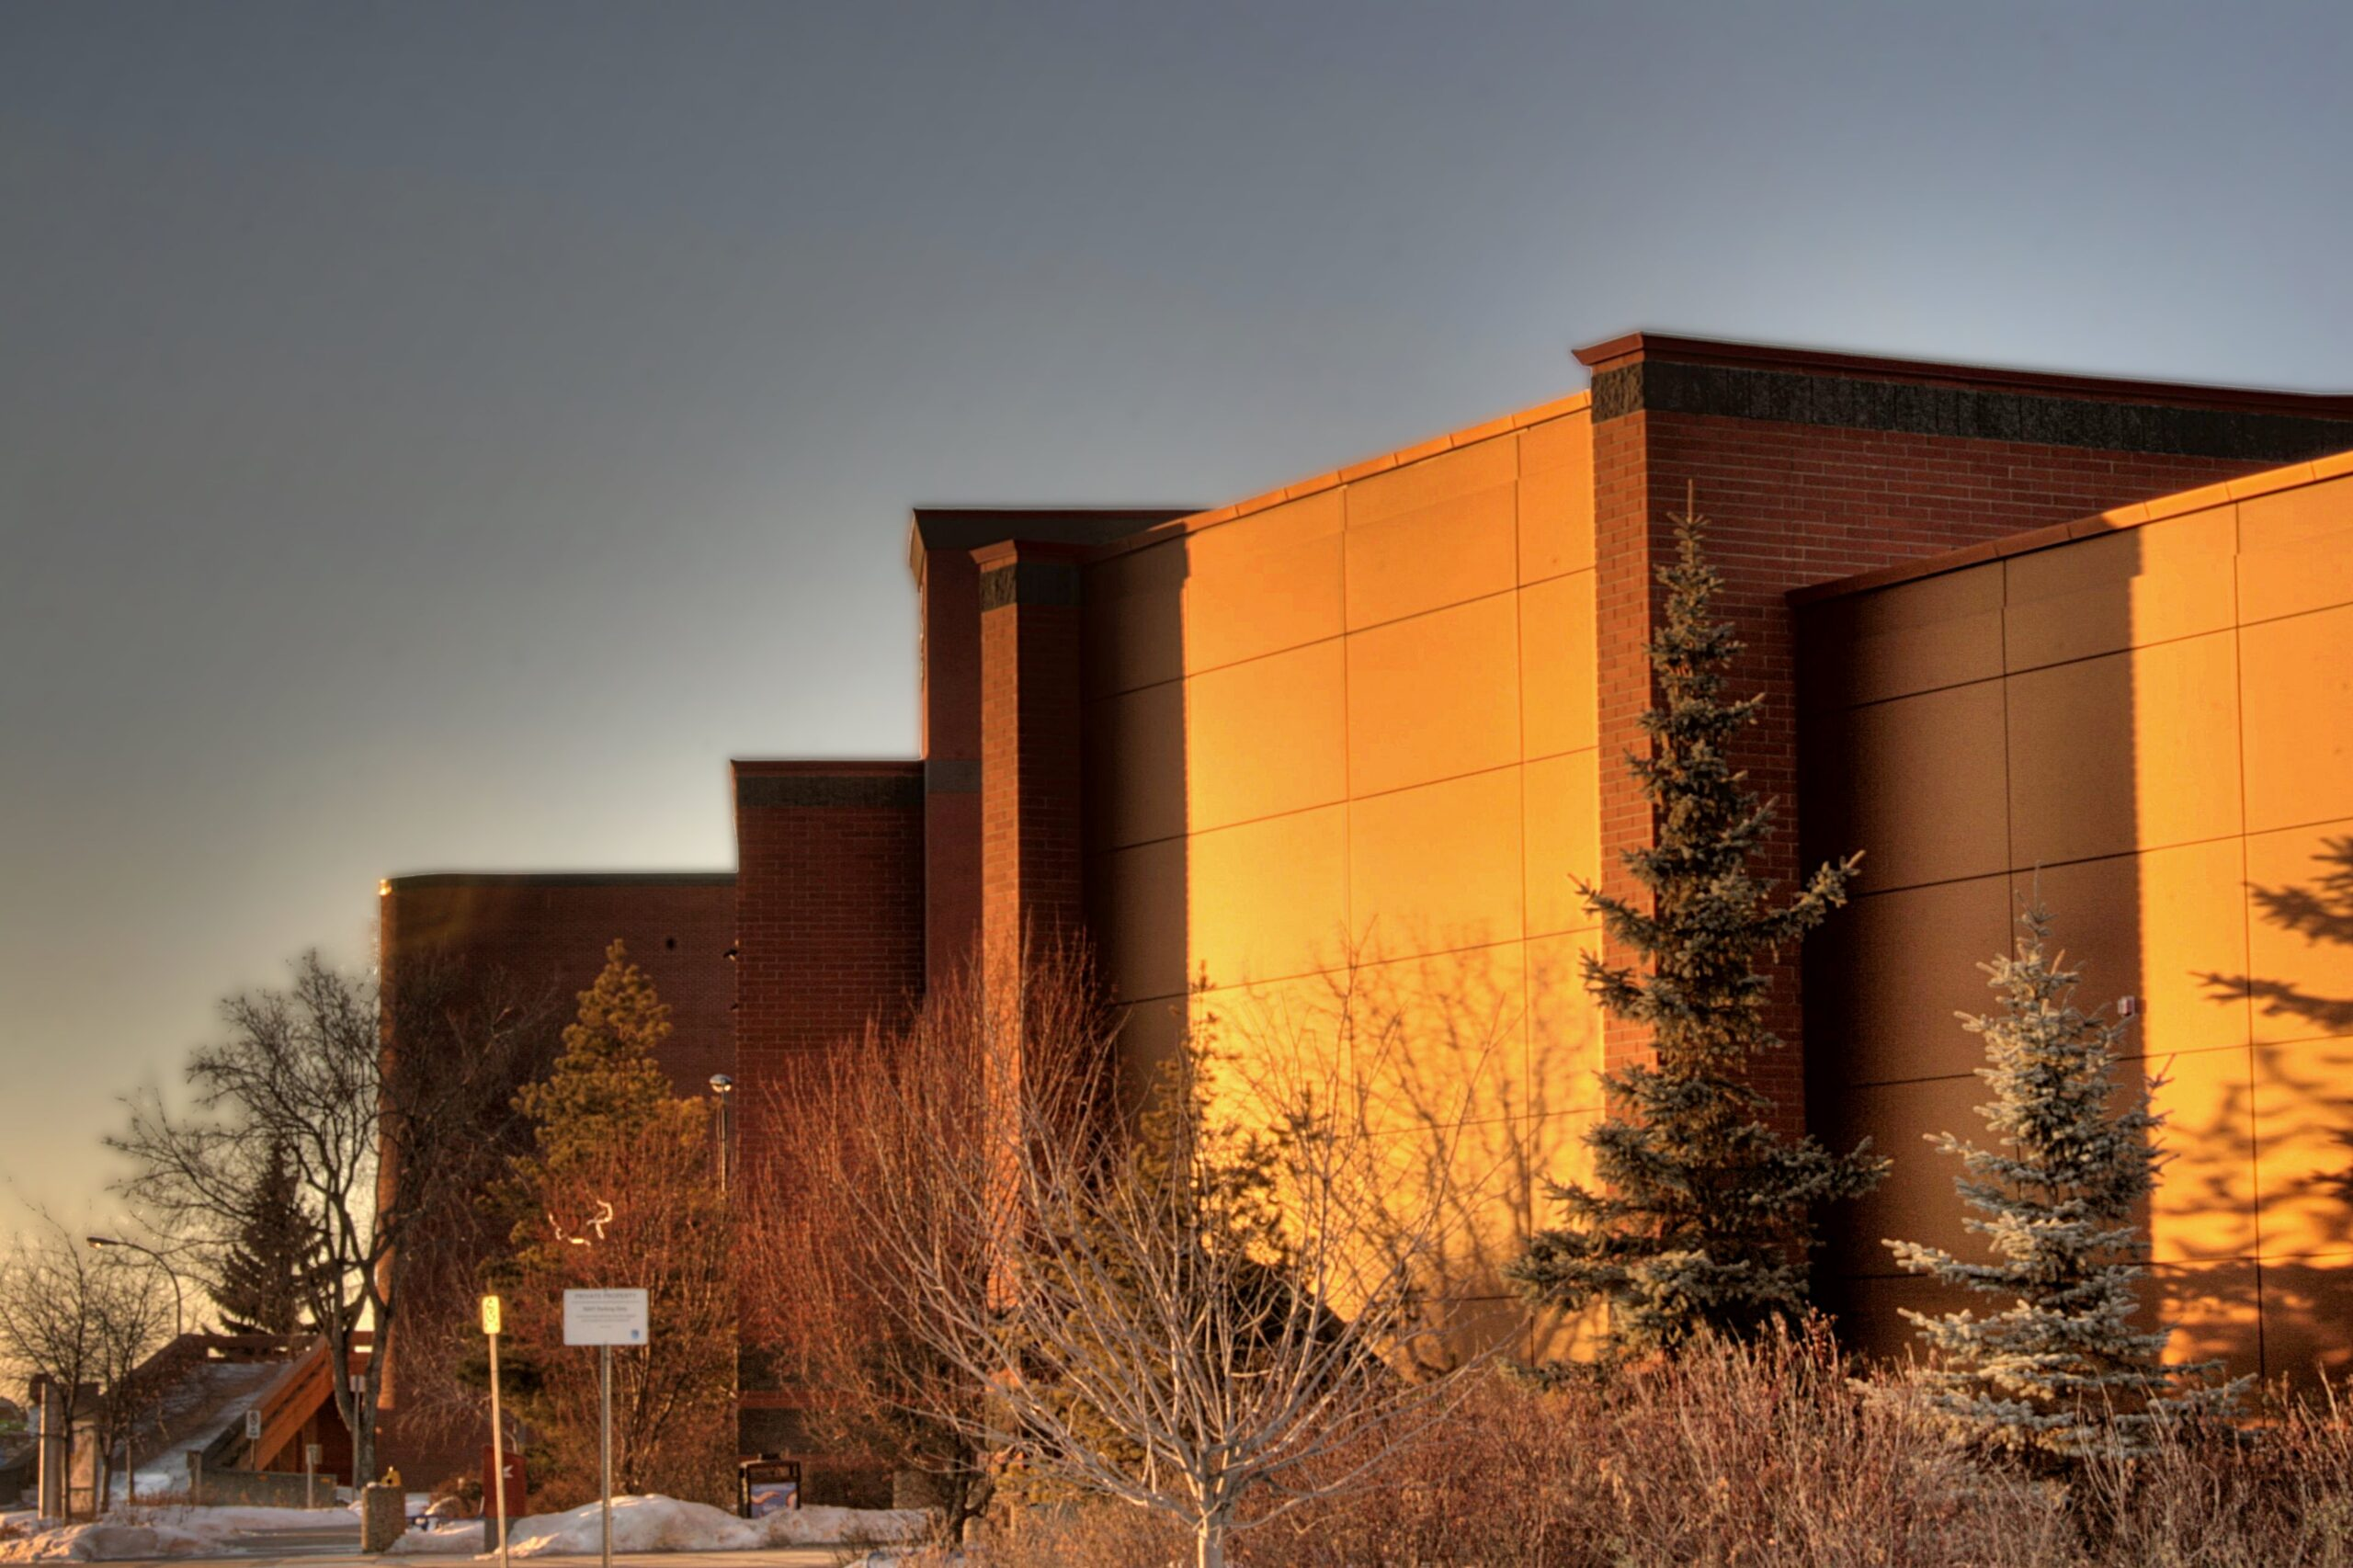 NAIT South Learning Centre